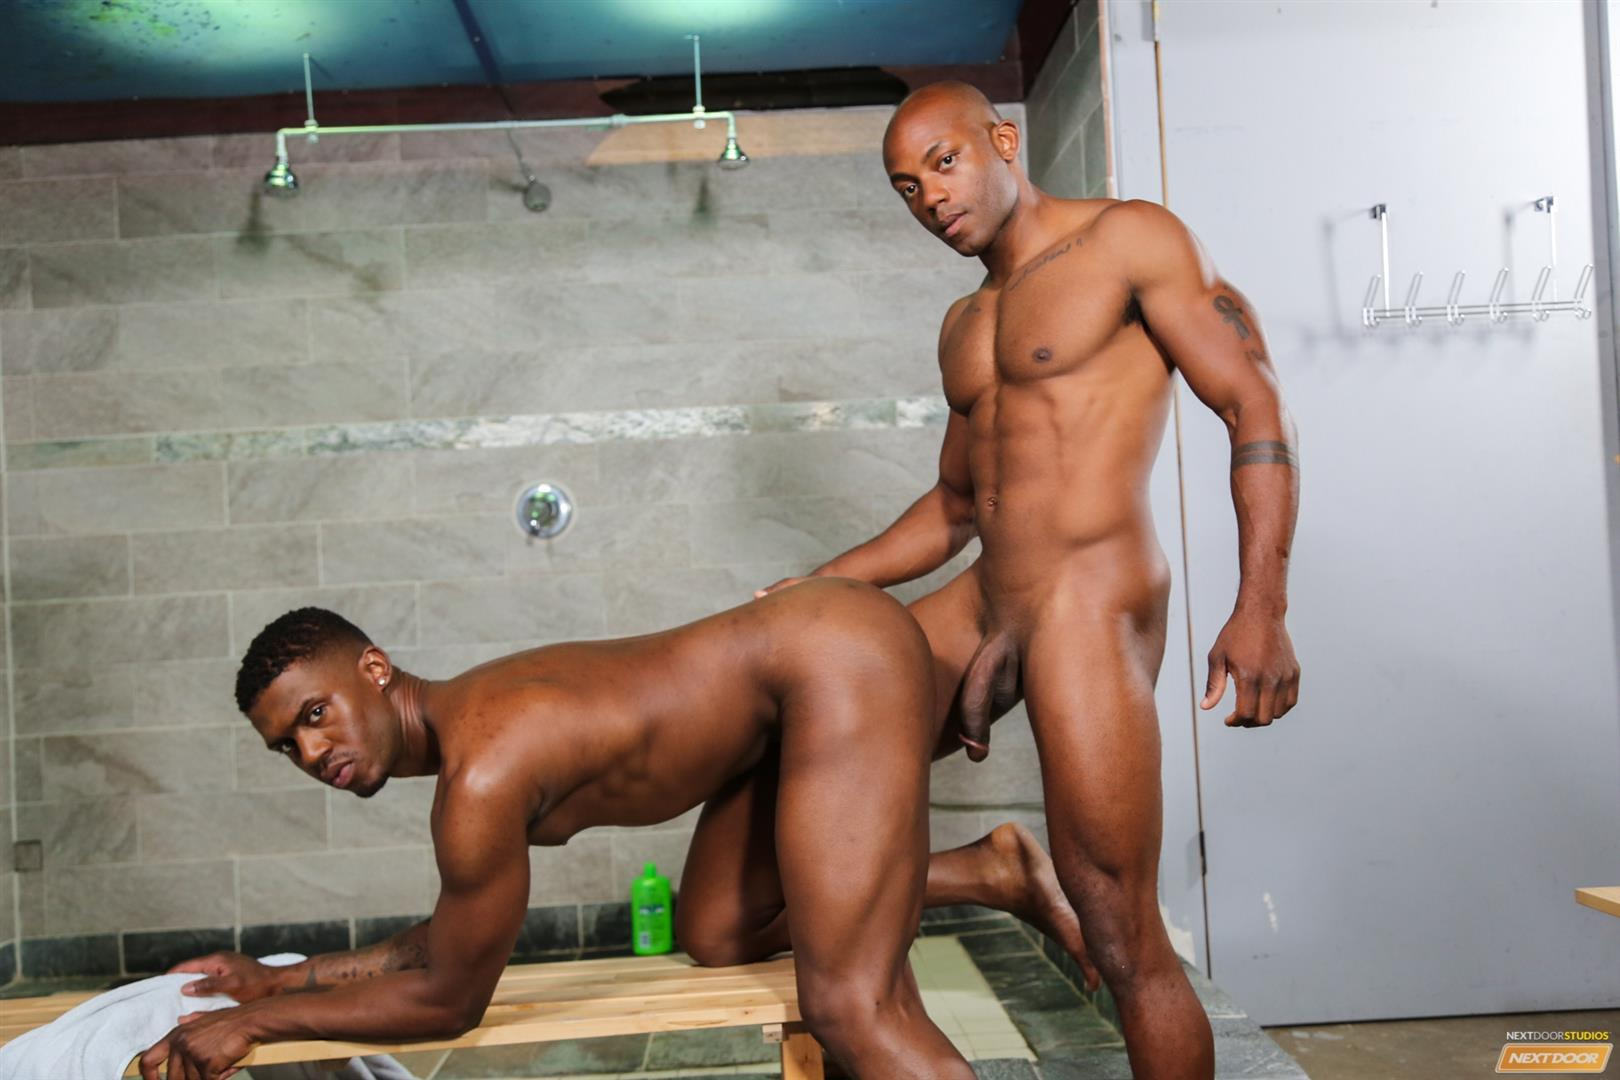 Next Door Ebony Krave Moore and Osiris Blade Big Black Cocks Dicks Fucking Amateur Gay Porn 12 Muscular Black Guys Take Turns Fucking Each Other In The Locker Room